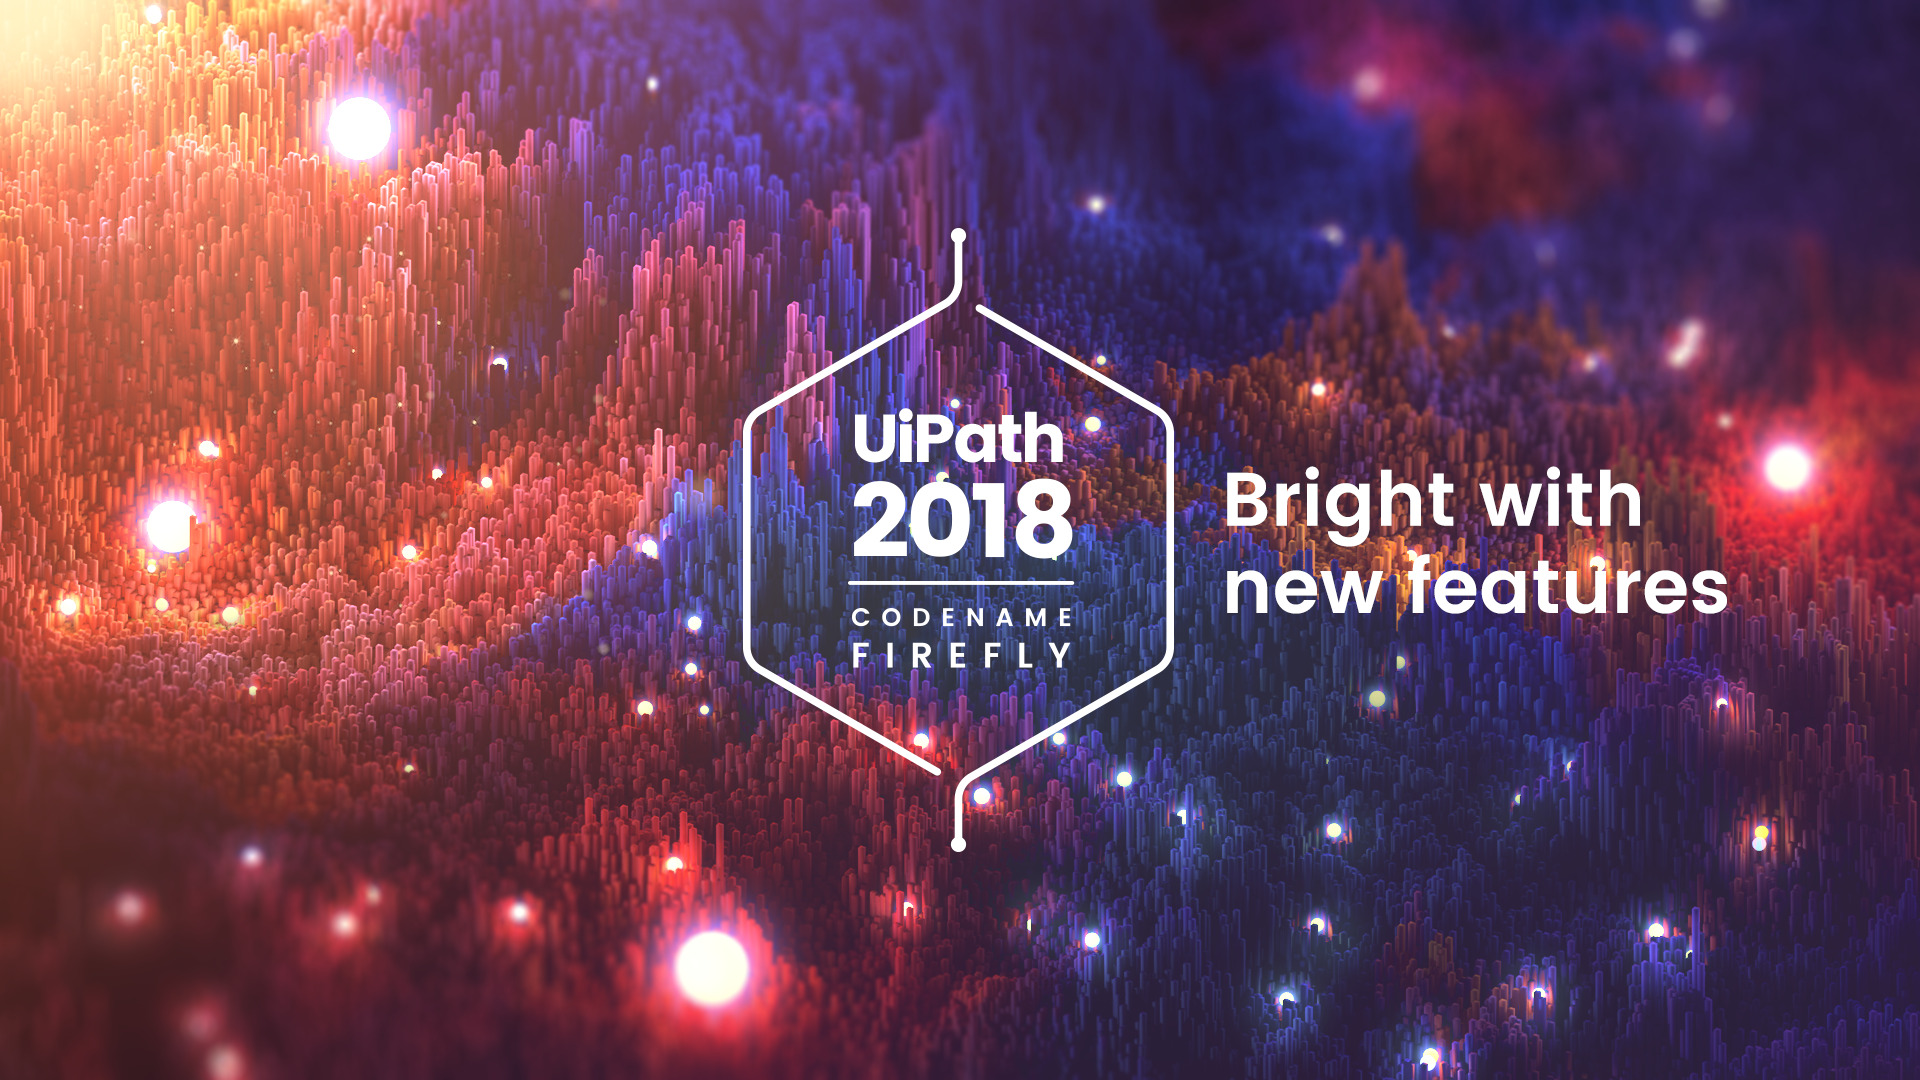 UiPath 2018 Release: Unlocking the Full Potential of Digital Transformation through Enterprise Automation